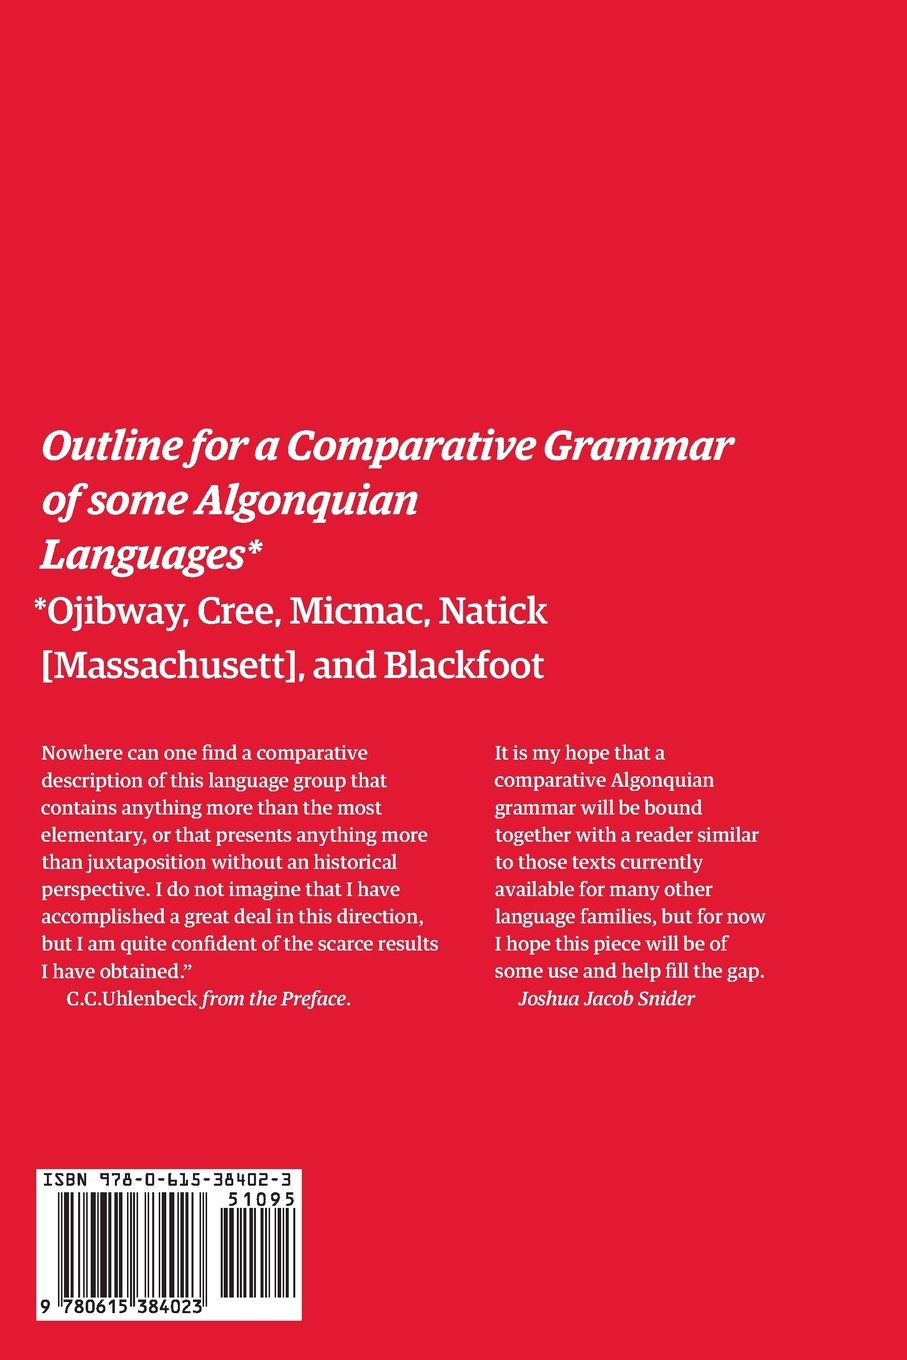 Micmac Natick Cree Outline for a Comparative Grammar of Some Algonquian Languages: Ojibway and Blackfoot Massachusett